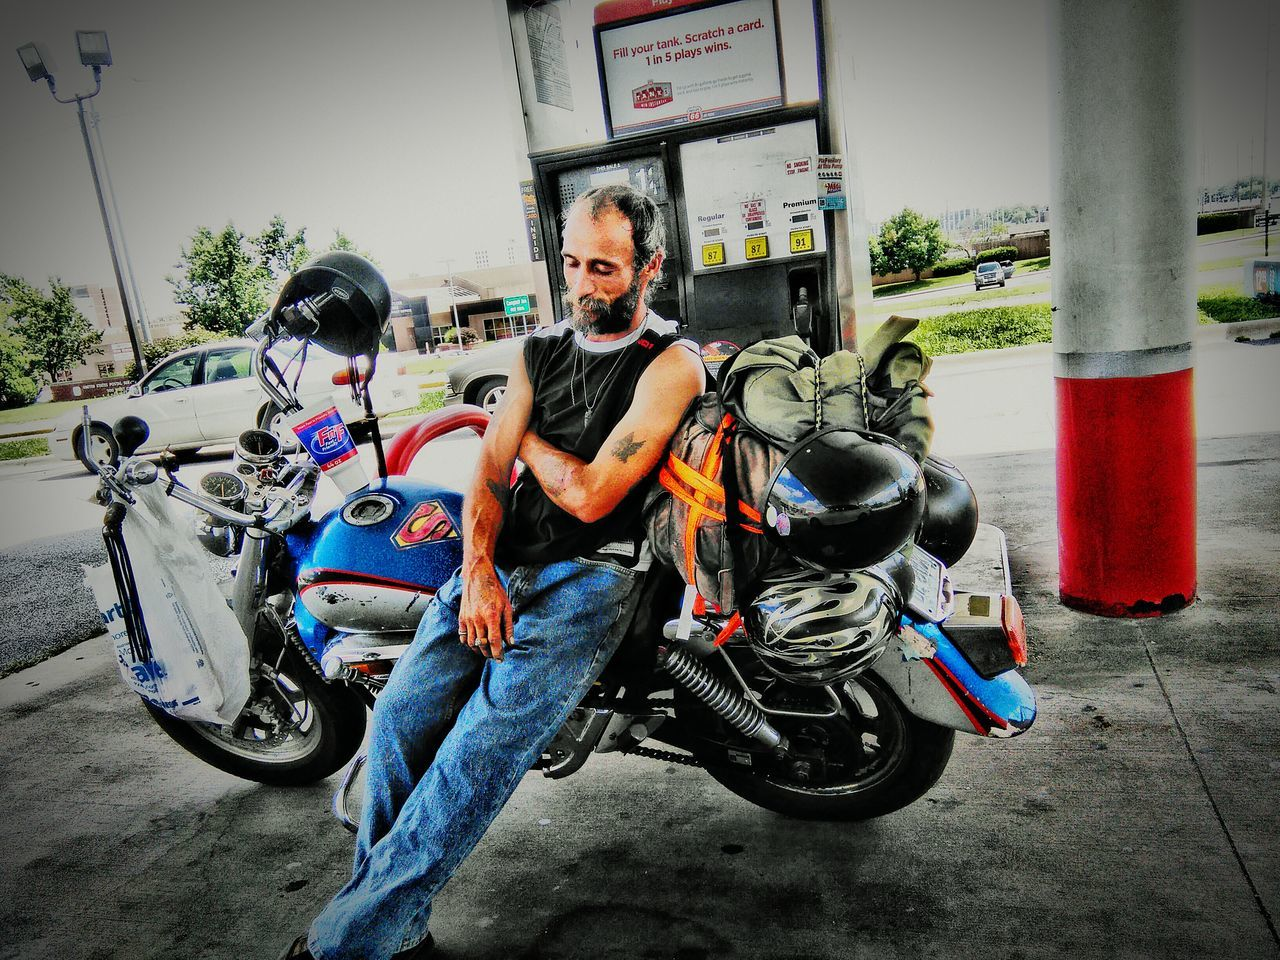 Different Perspective Motorcycles Man On Bike Street Photography Gas Station Guy Showcase July Summer Views Popular Portrait Simplicity Relaxing Eyeem Collection Fine Art Tadaa Community EyeEm Summer Shots Transportation Road Side